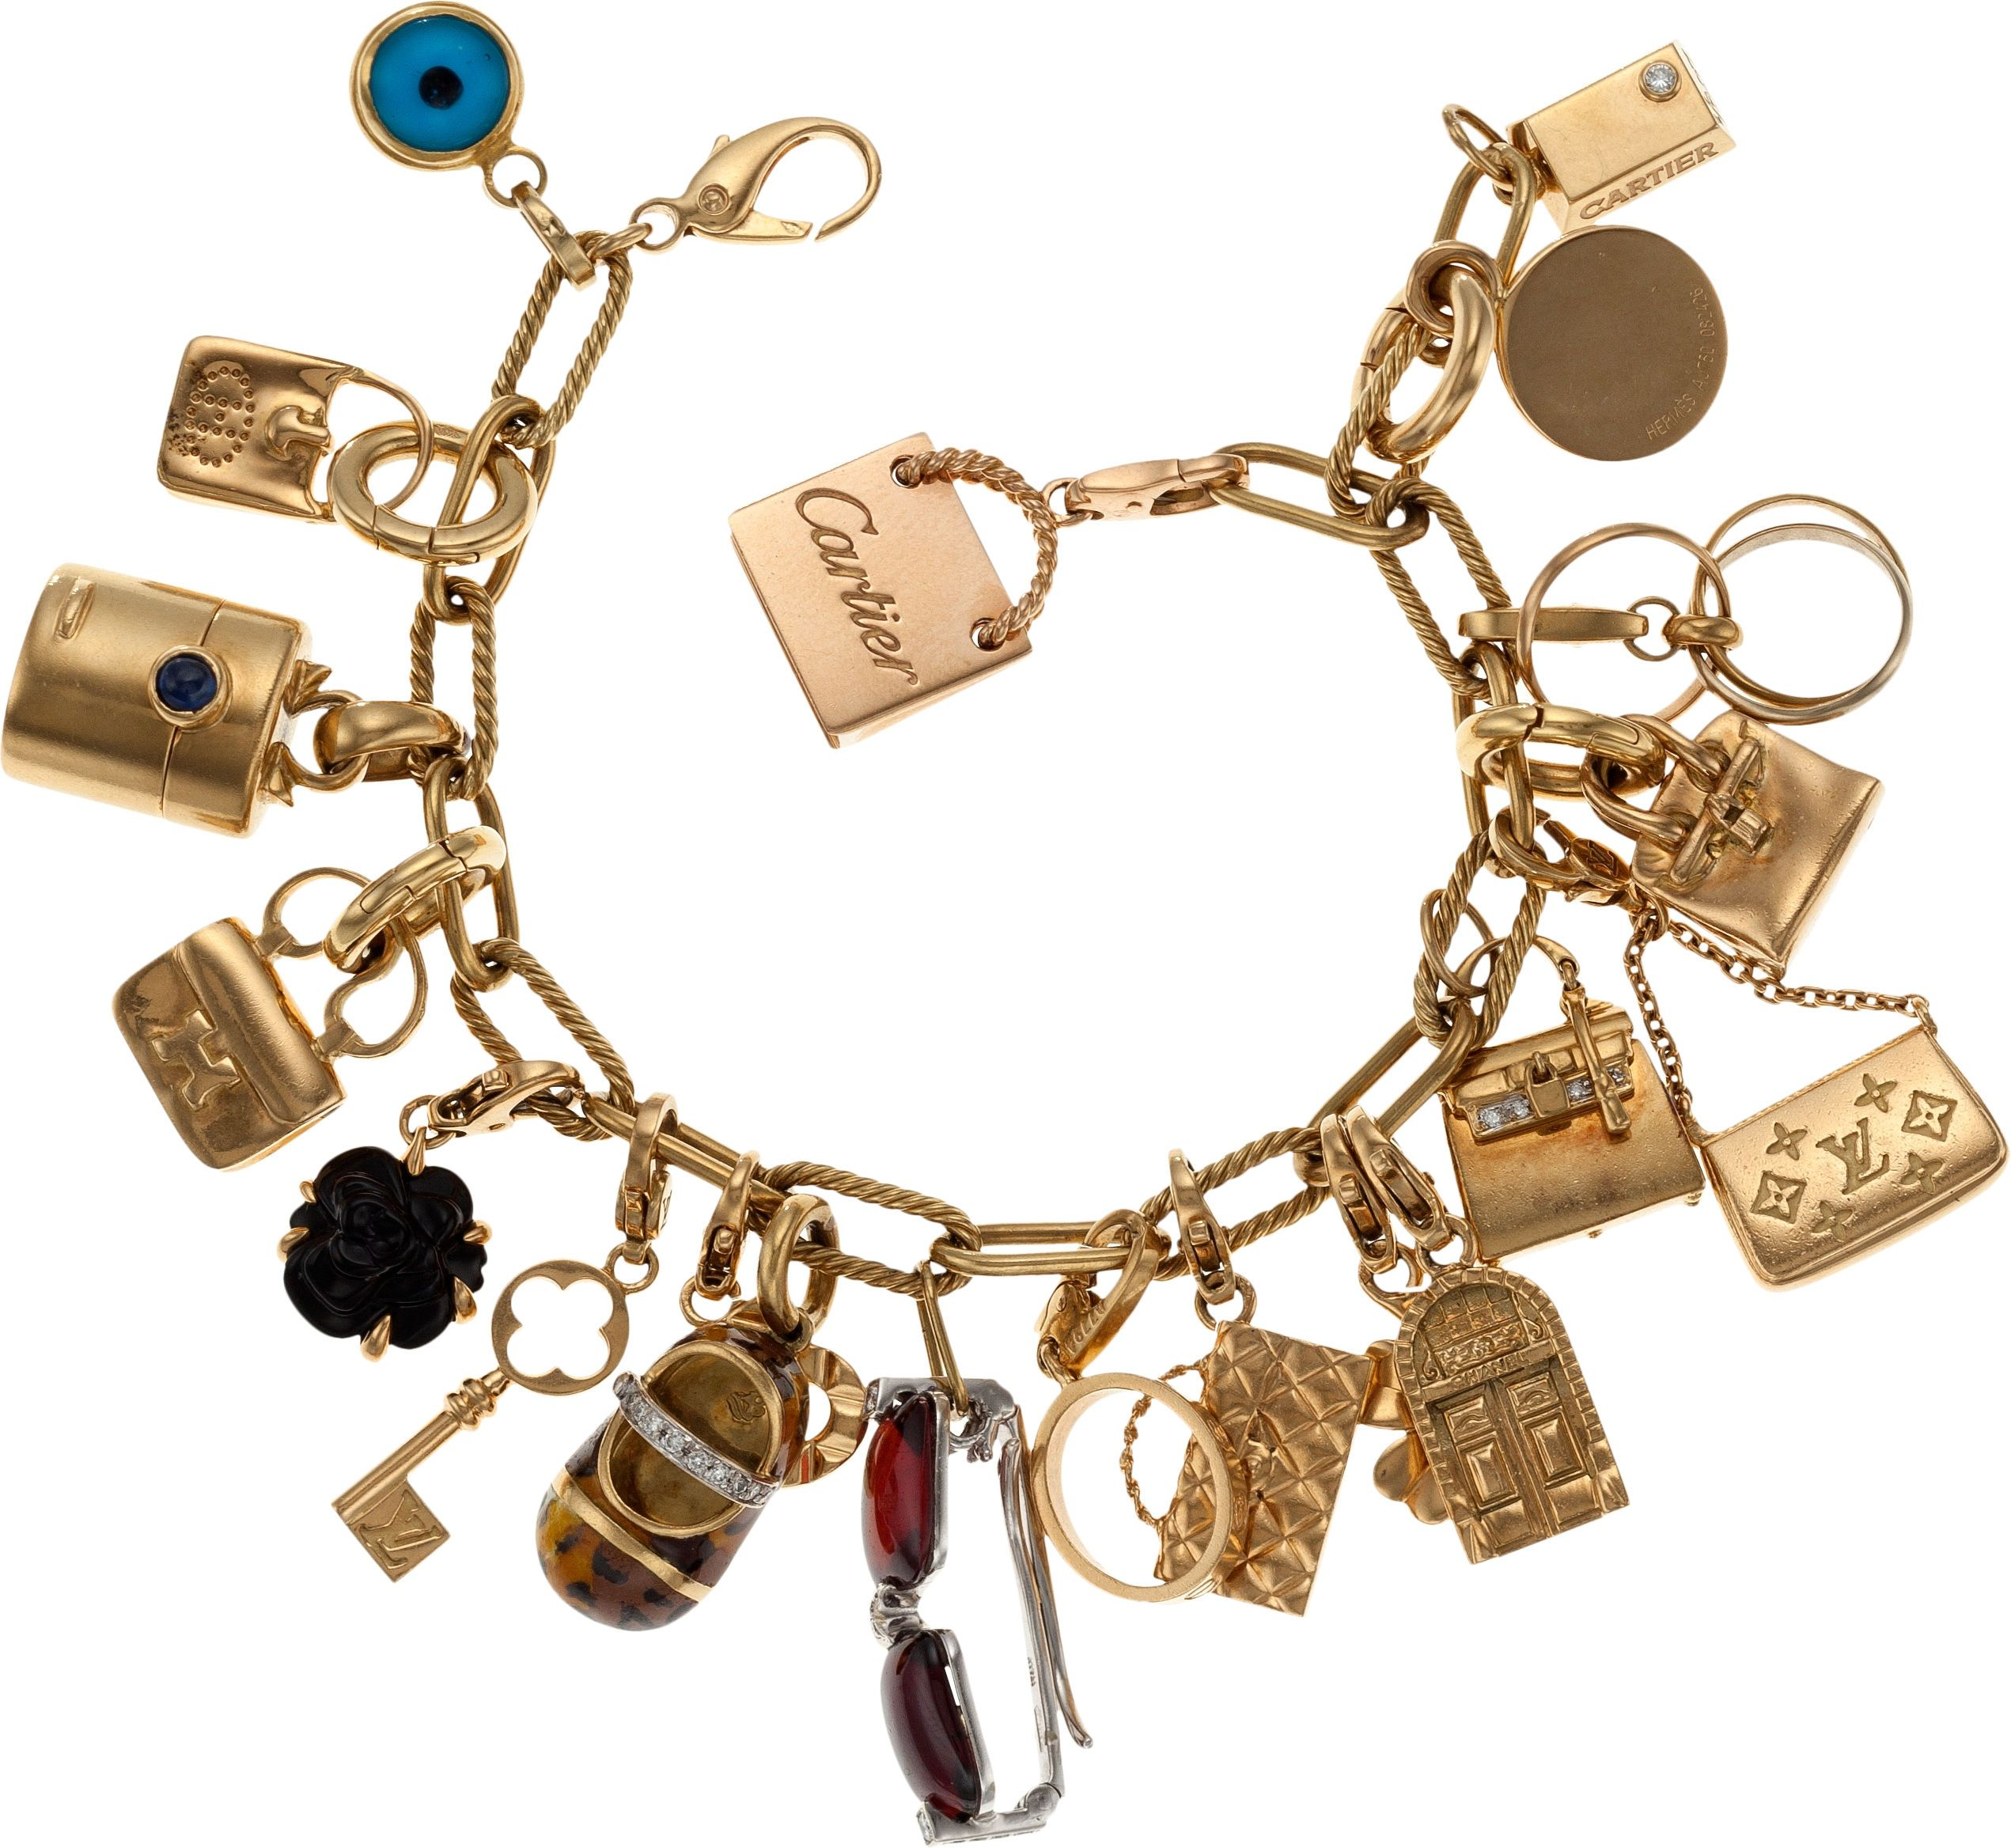 America's Auction House This One Of A Kind Gold Charm Bracelet Features  Twenty Name Brand Charms